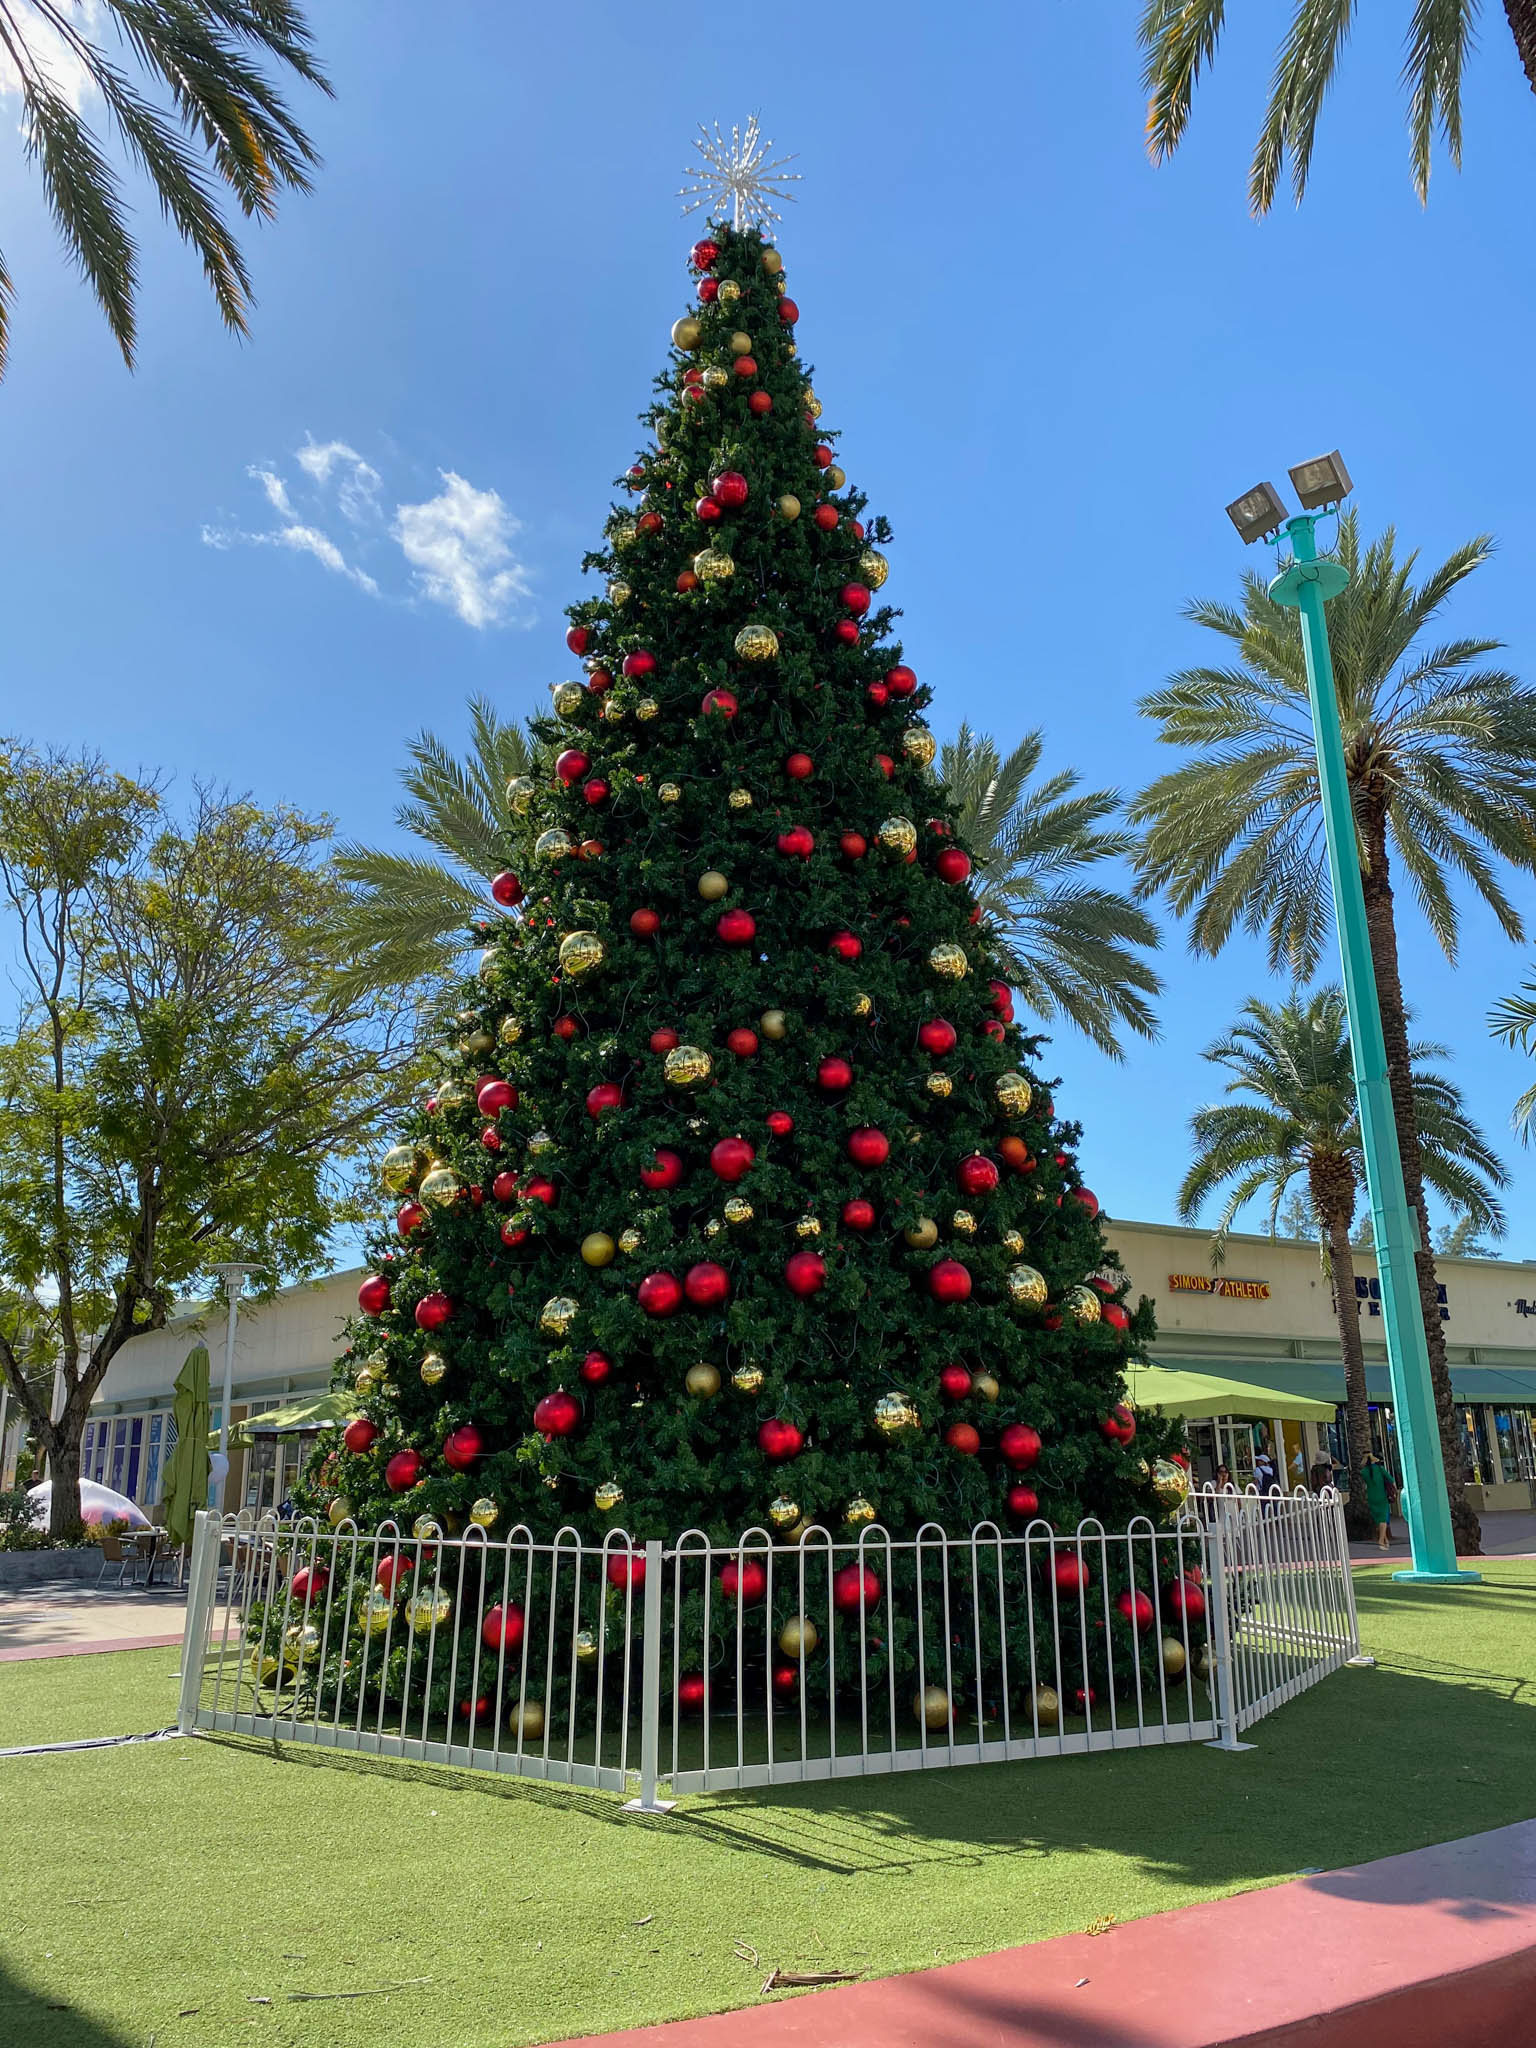 Kerstboom op Lincoln Road